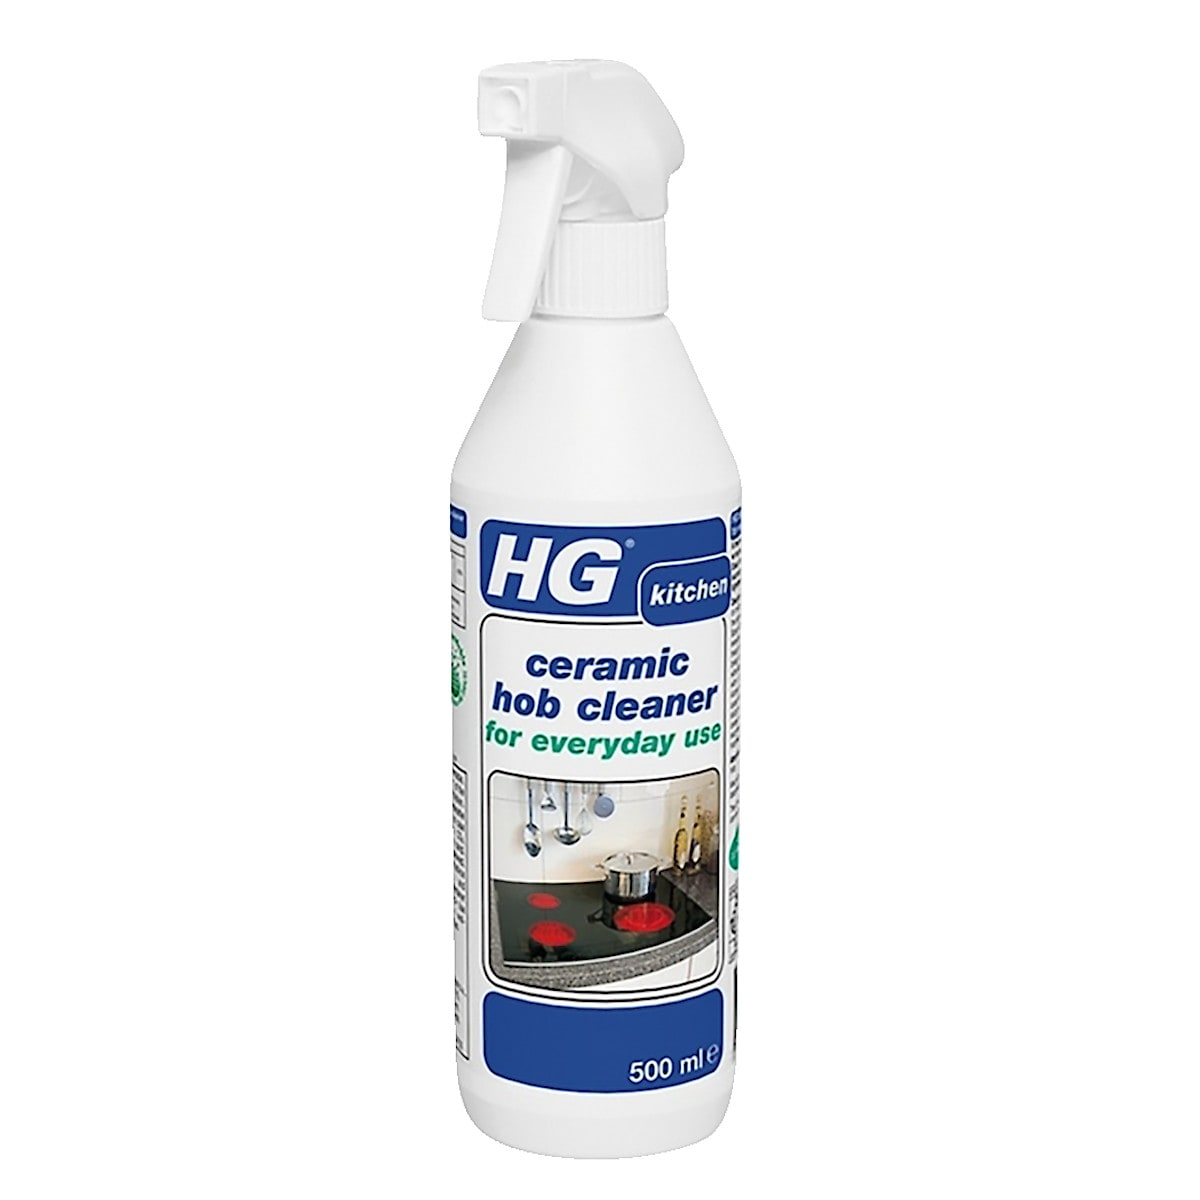 HG hob cleaner daily